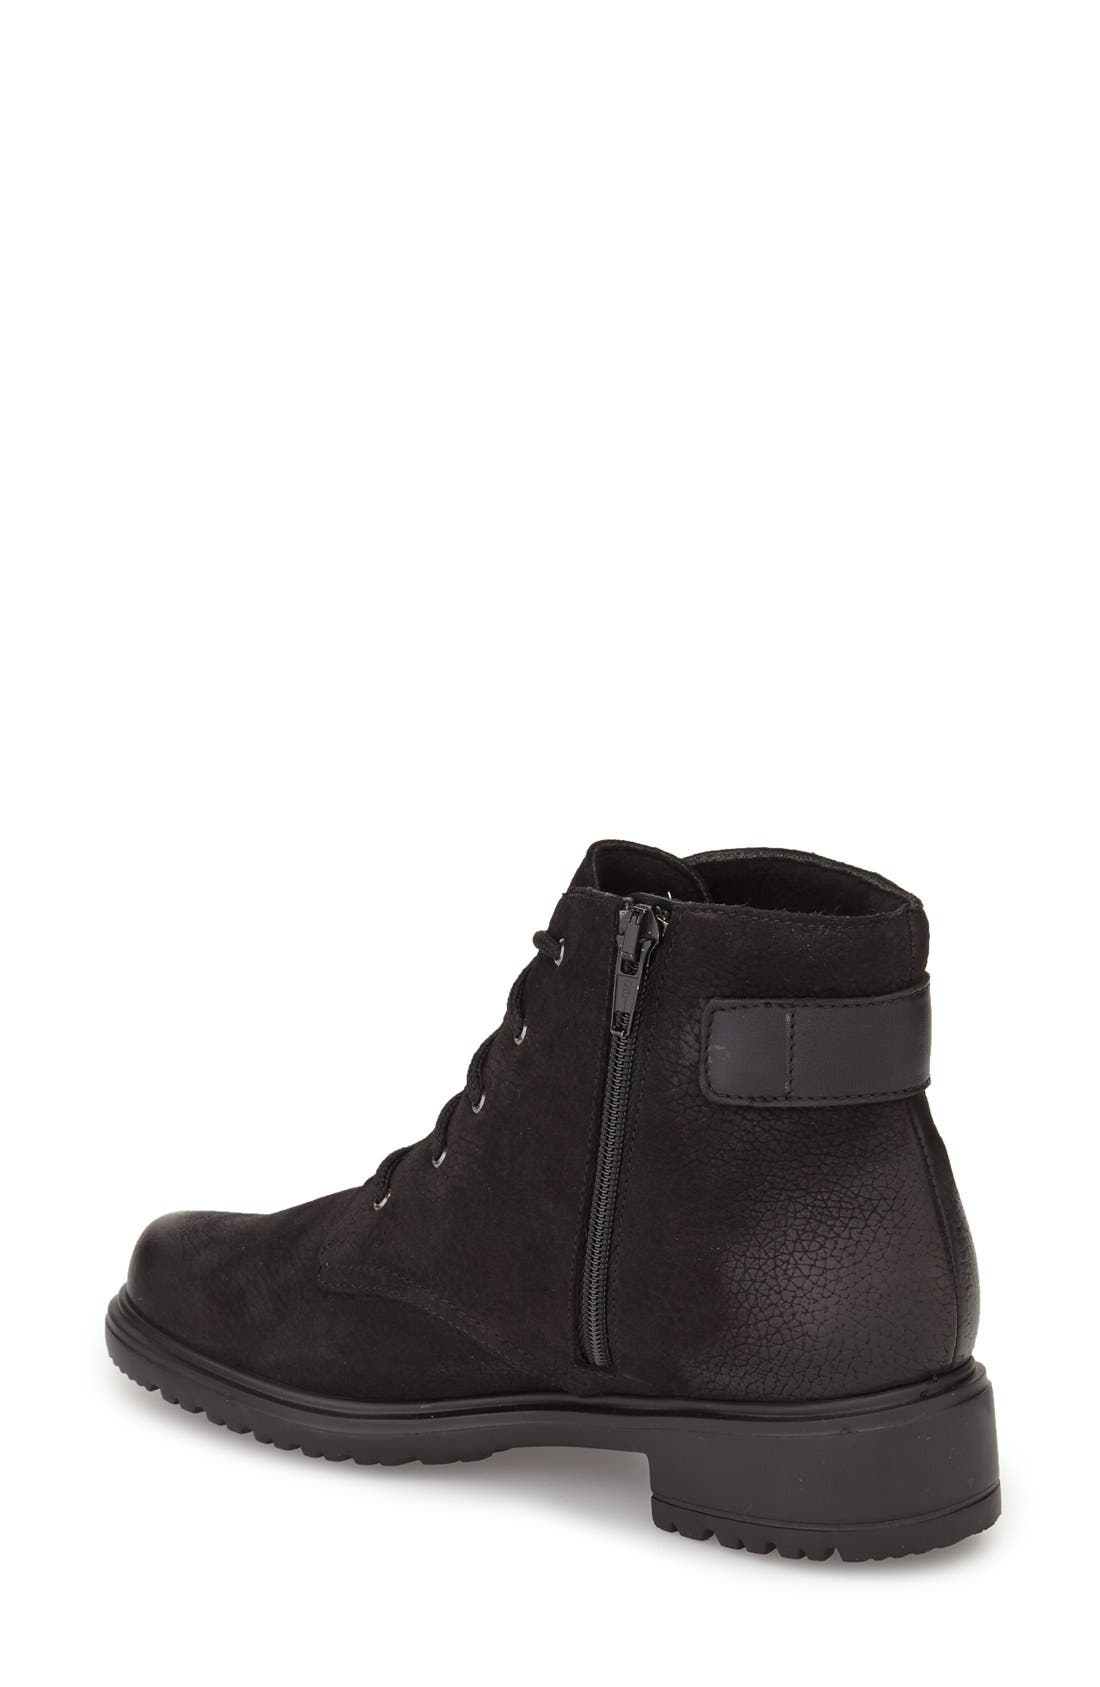 Bradley Water Resistant Boot,                             Alternate thumbnail 2, color,                             BLACK TUMBLED NUBUCK LEATHER